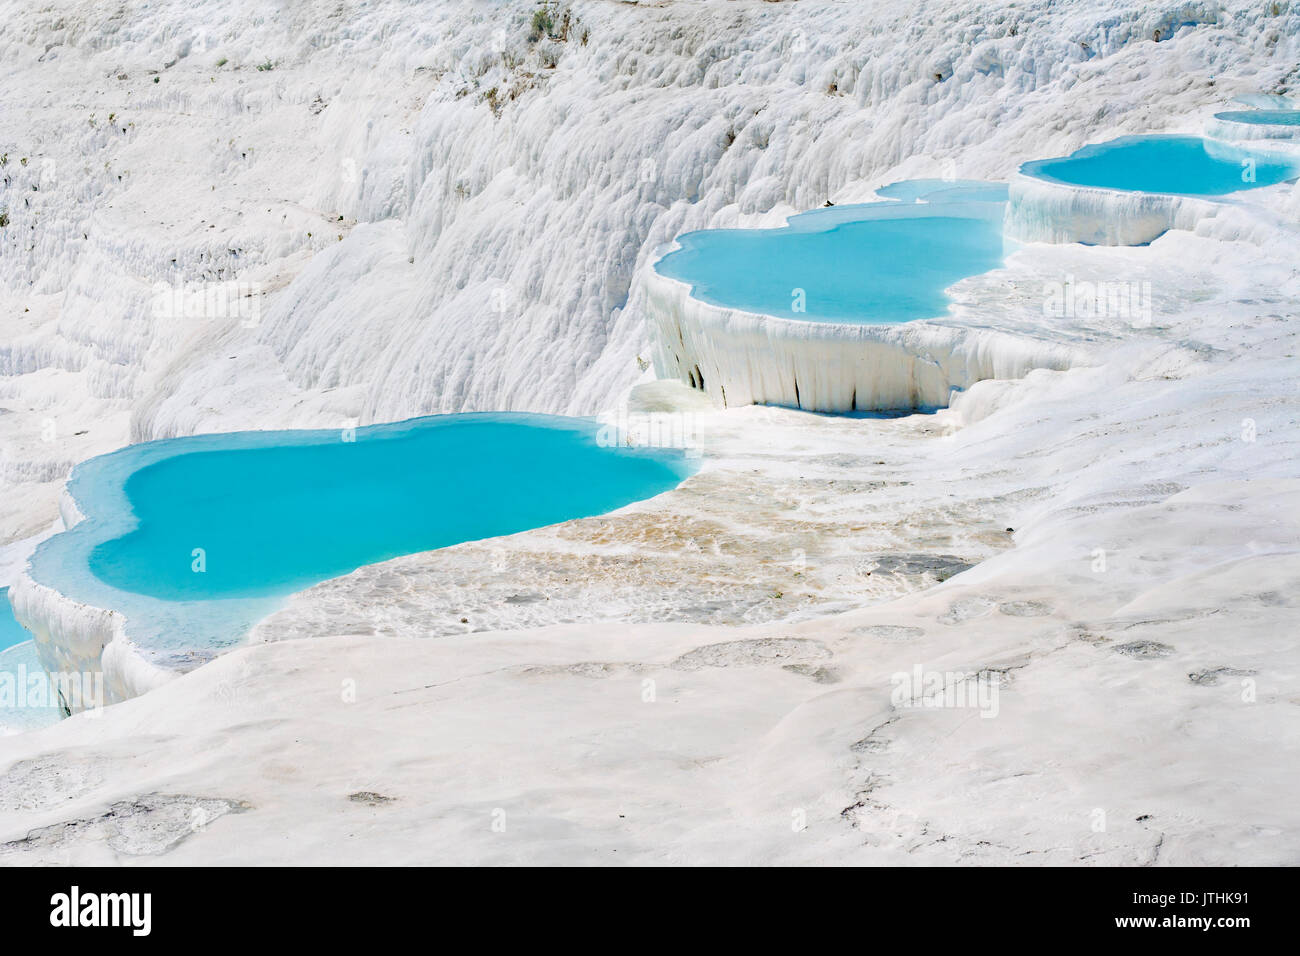 Natural travertine pools and terraces, Pamukkale, Turkey - Stock Image